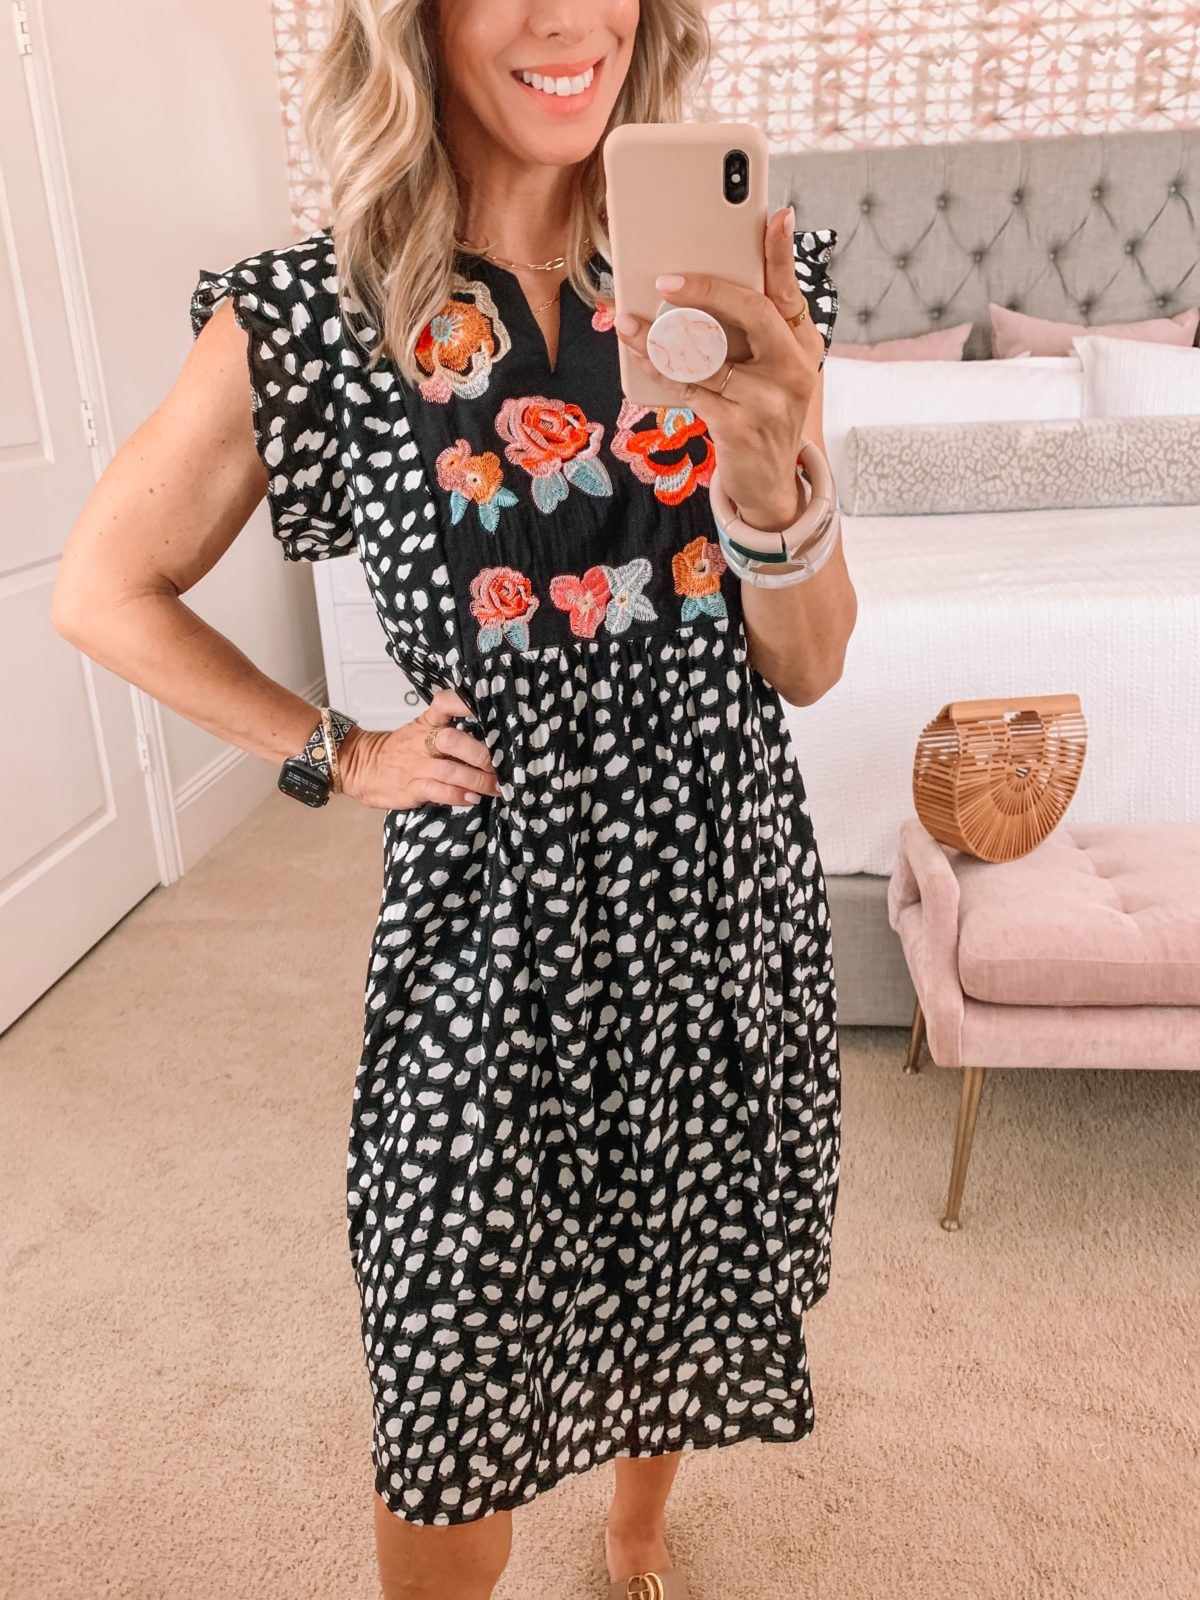 Amazon Fashion Faves, Polka Dot Embroidered Dress and Sandals